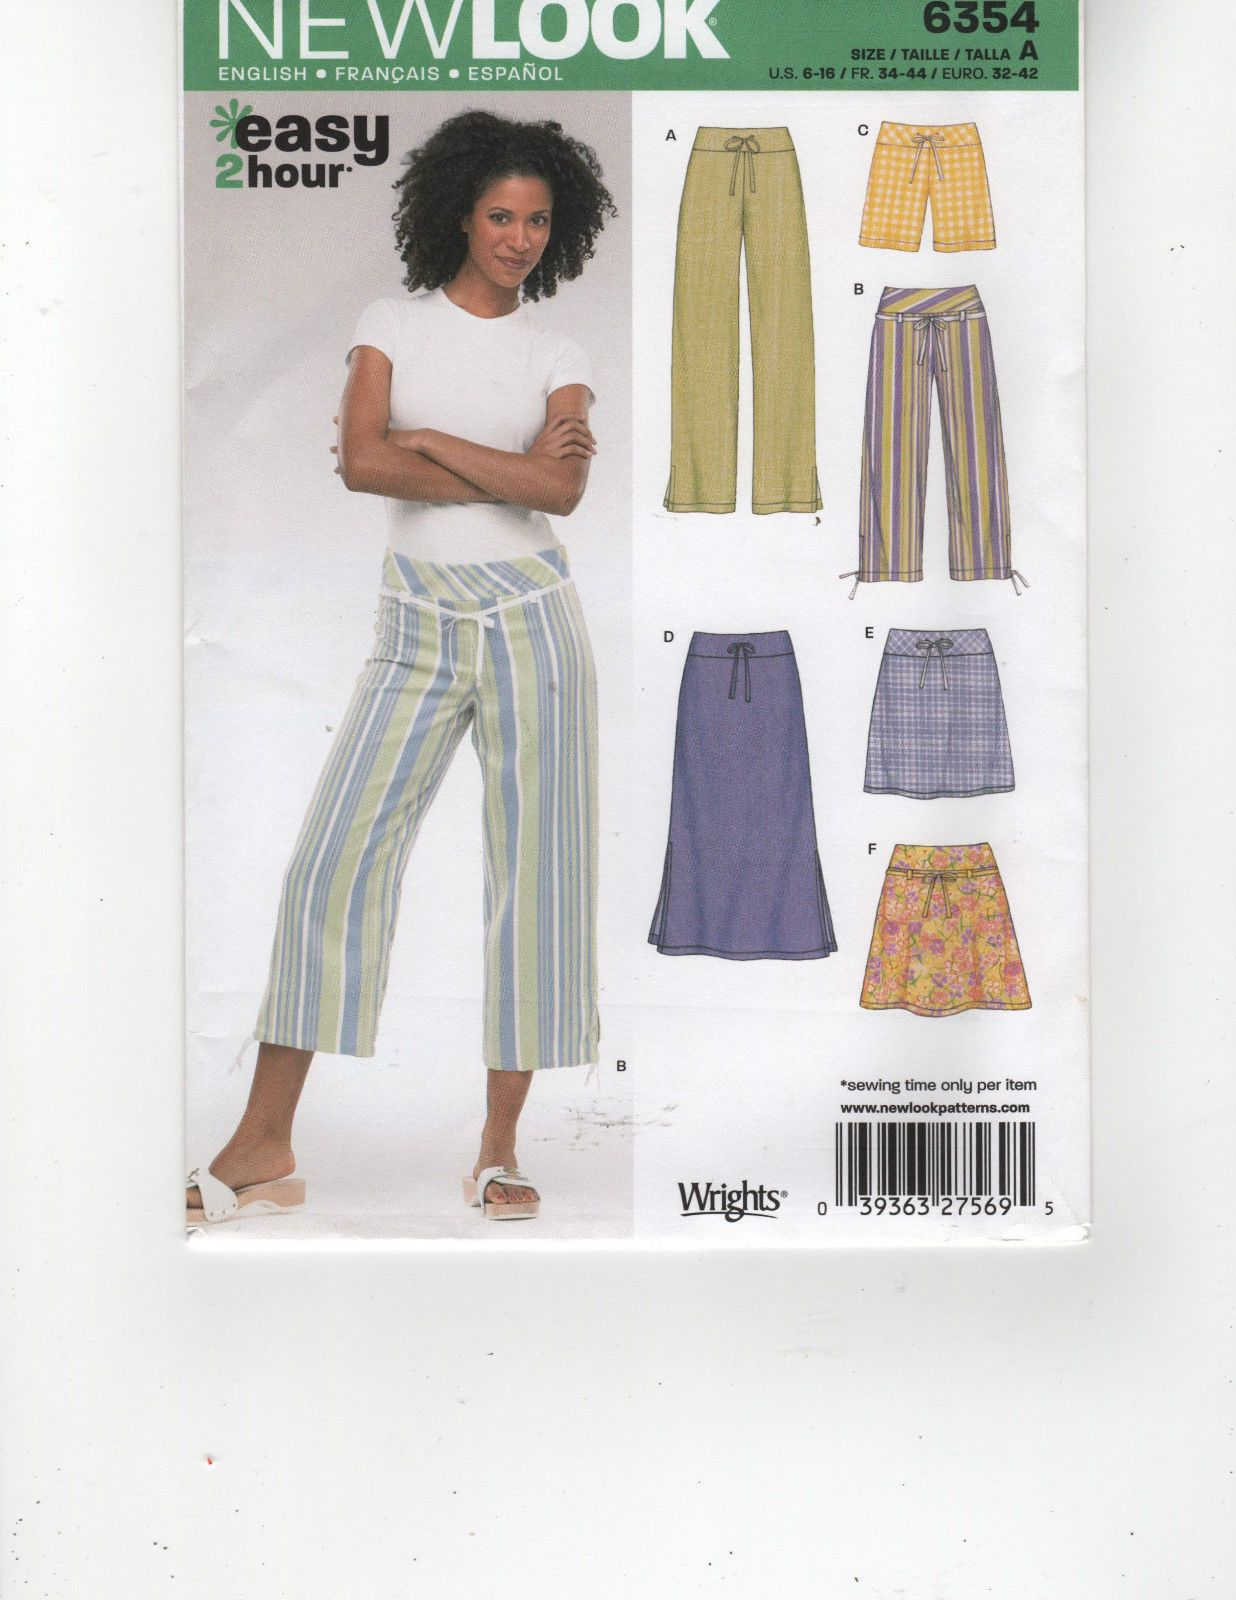 New look easy 2 hour pattern 6354 misses pants shorts skirt size new look easy 2 hour pattern 6354 misses pants shorts skirt size 6 16 jeuxipadfo Image collections